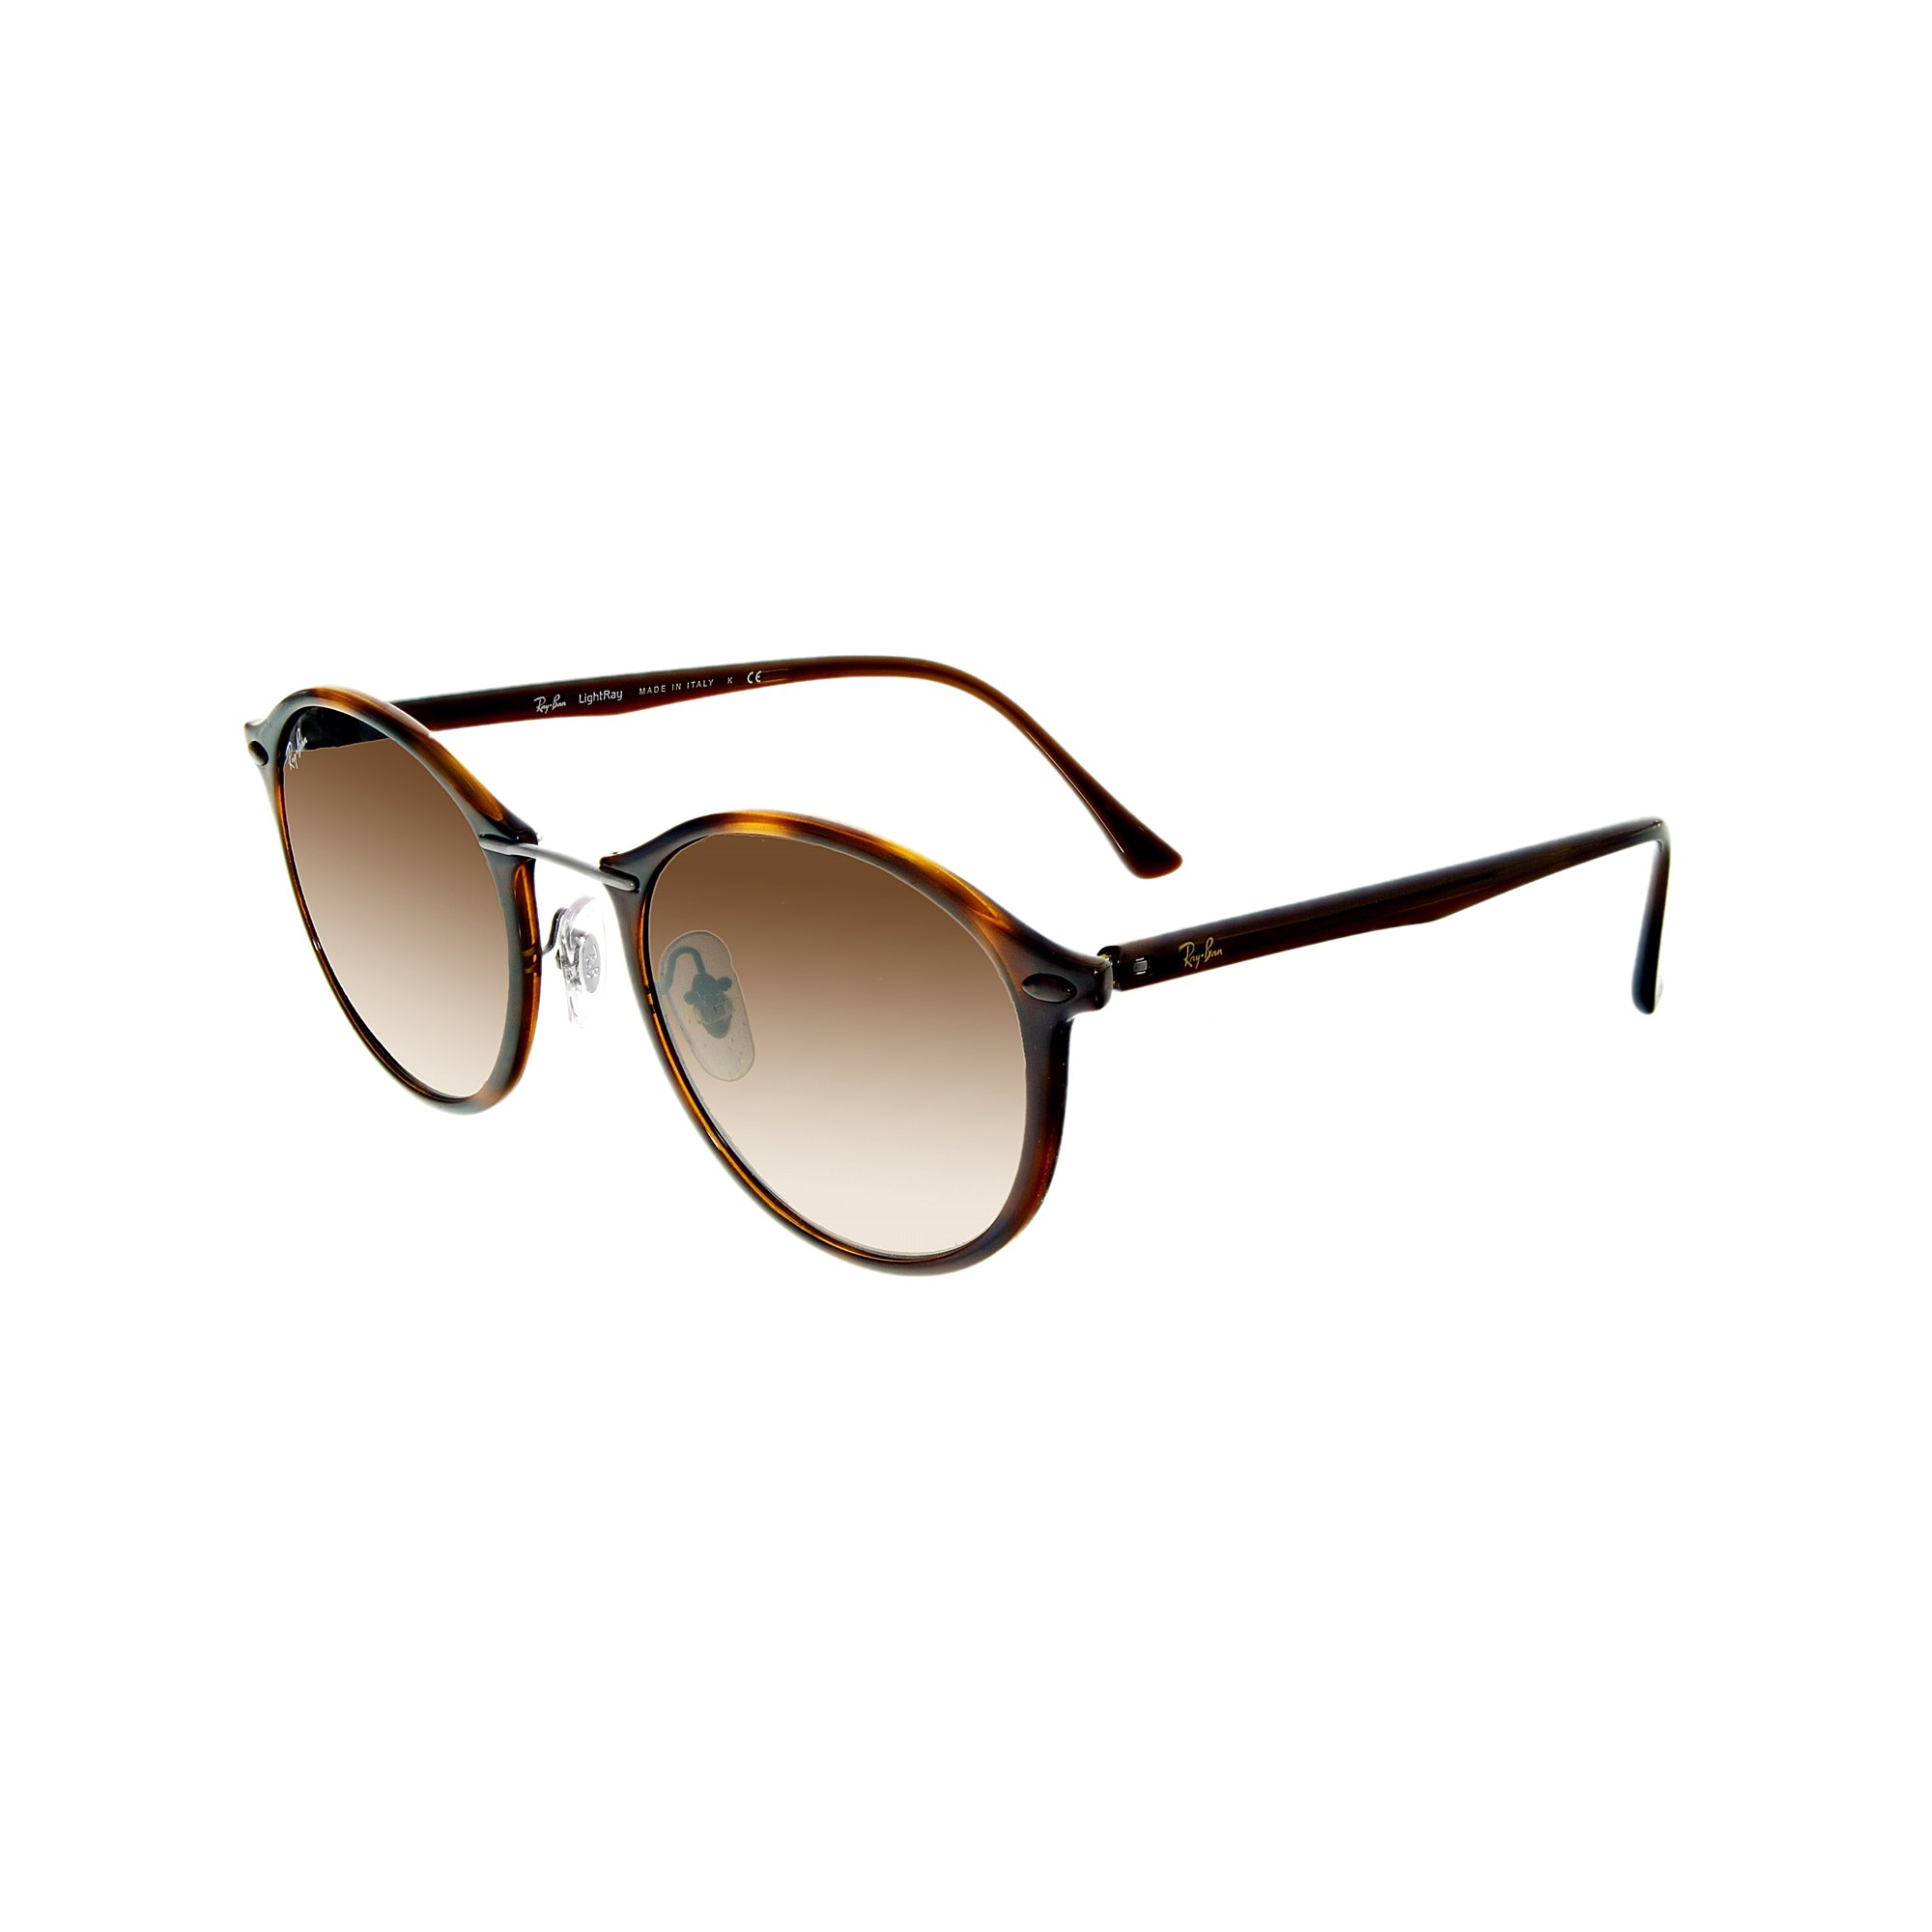 1d8afd55ee3f1 Ray-Ban Men s Gradient Round II Lightray RB4242-620113-49 Brown Sunglasses